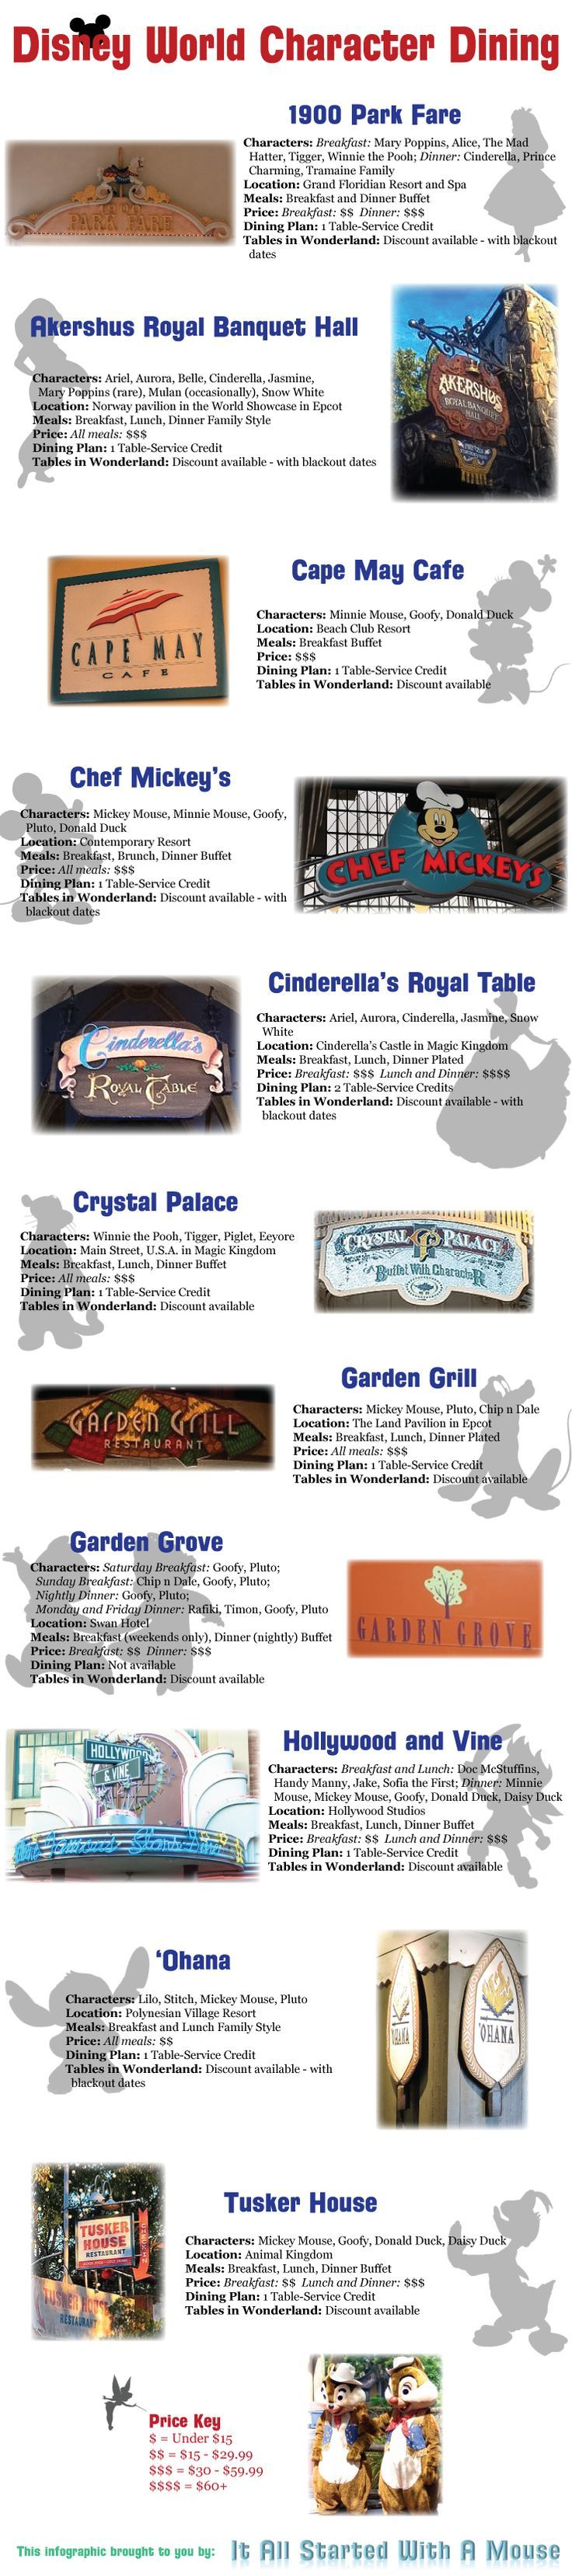 Disney World Character Dining Overview www.thepixieplanner #thepixieplanner